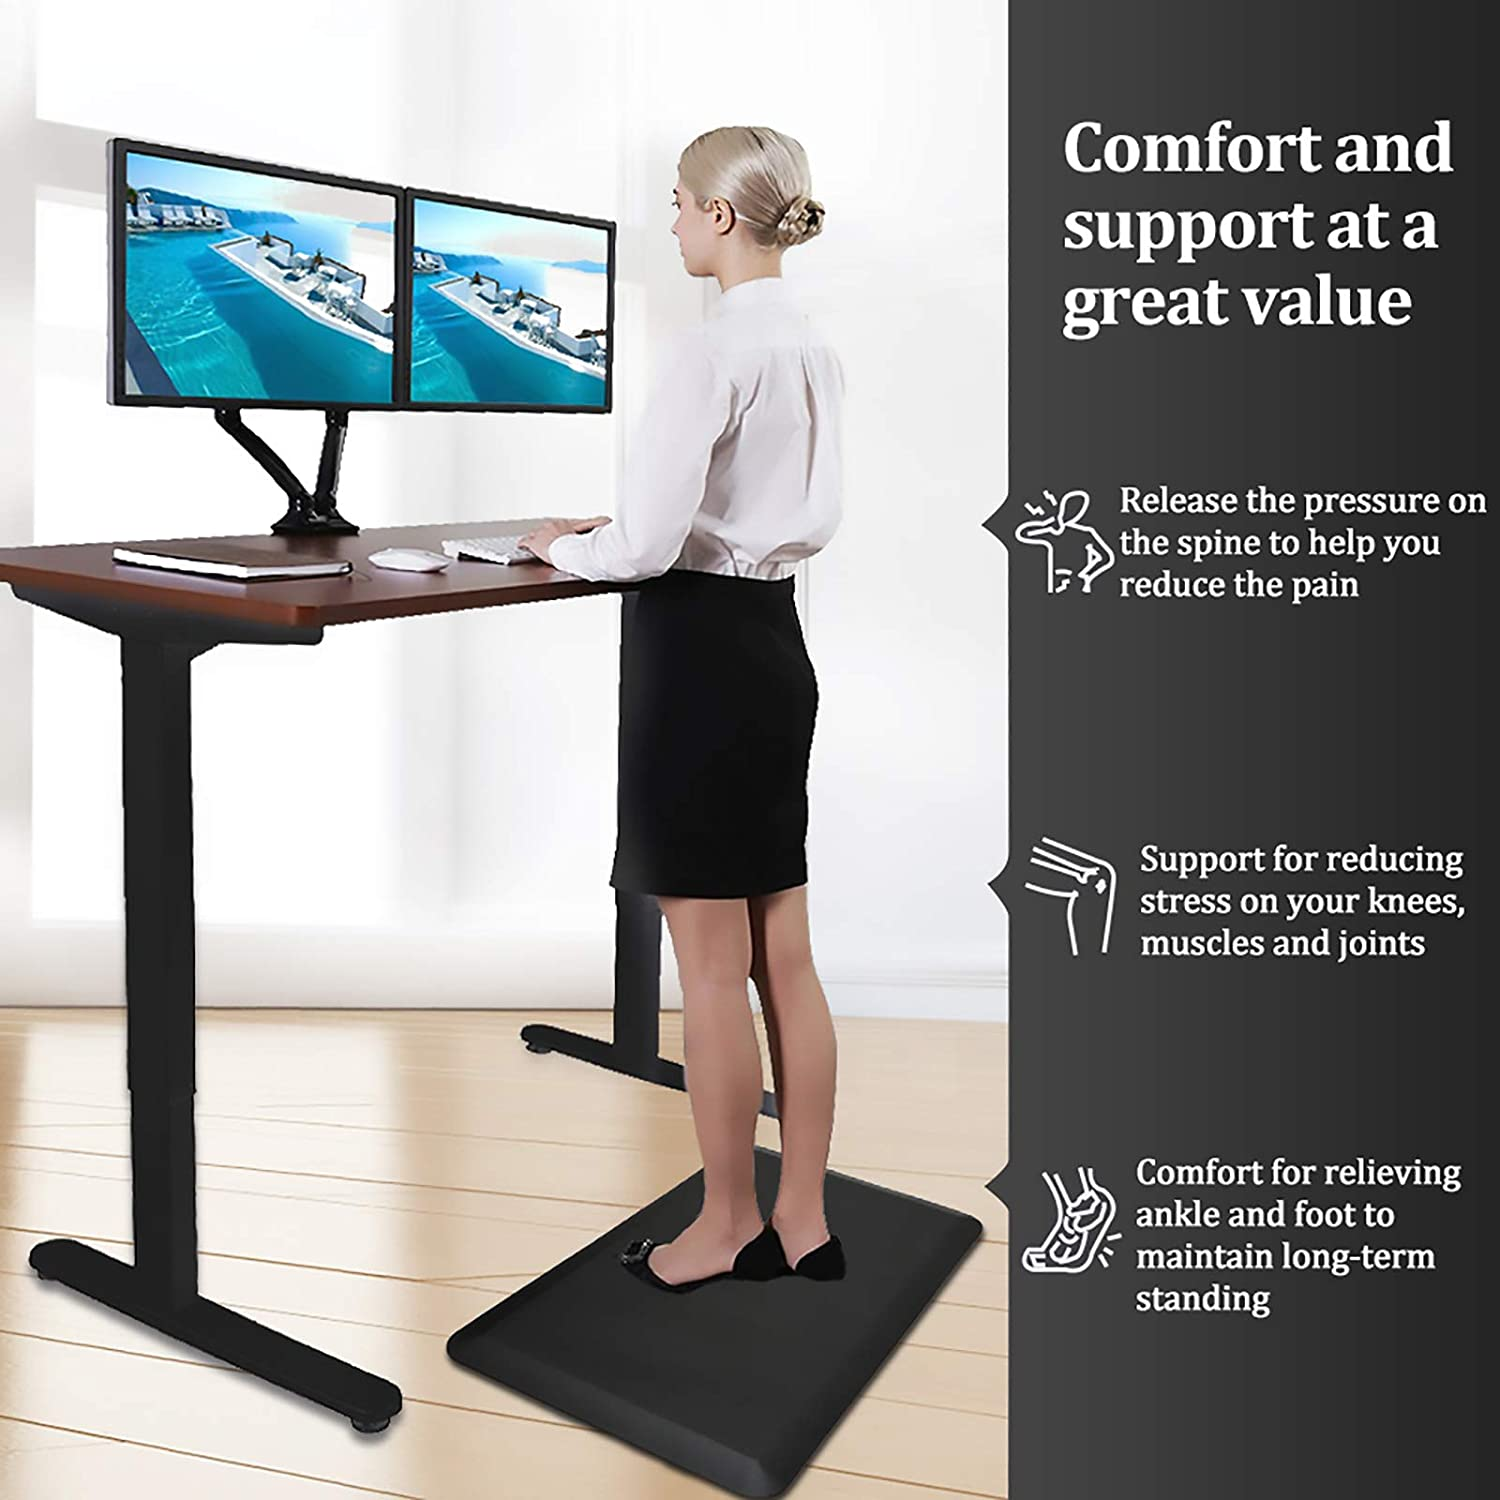 """Color&Geometry Anti Fatigue Floor Comfort Mat 3/4 Inch Thick 20""""32"""" Perfect for Standing Desks, Kitchen Sink, Stove, Dishwasher, Countertop, office or Garage, Black: Kitchen & Dining"""